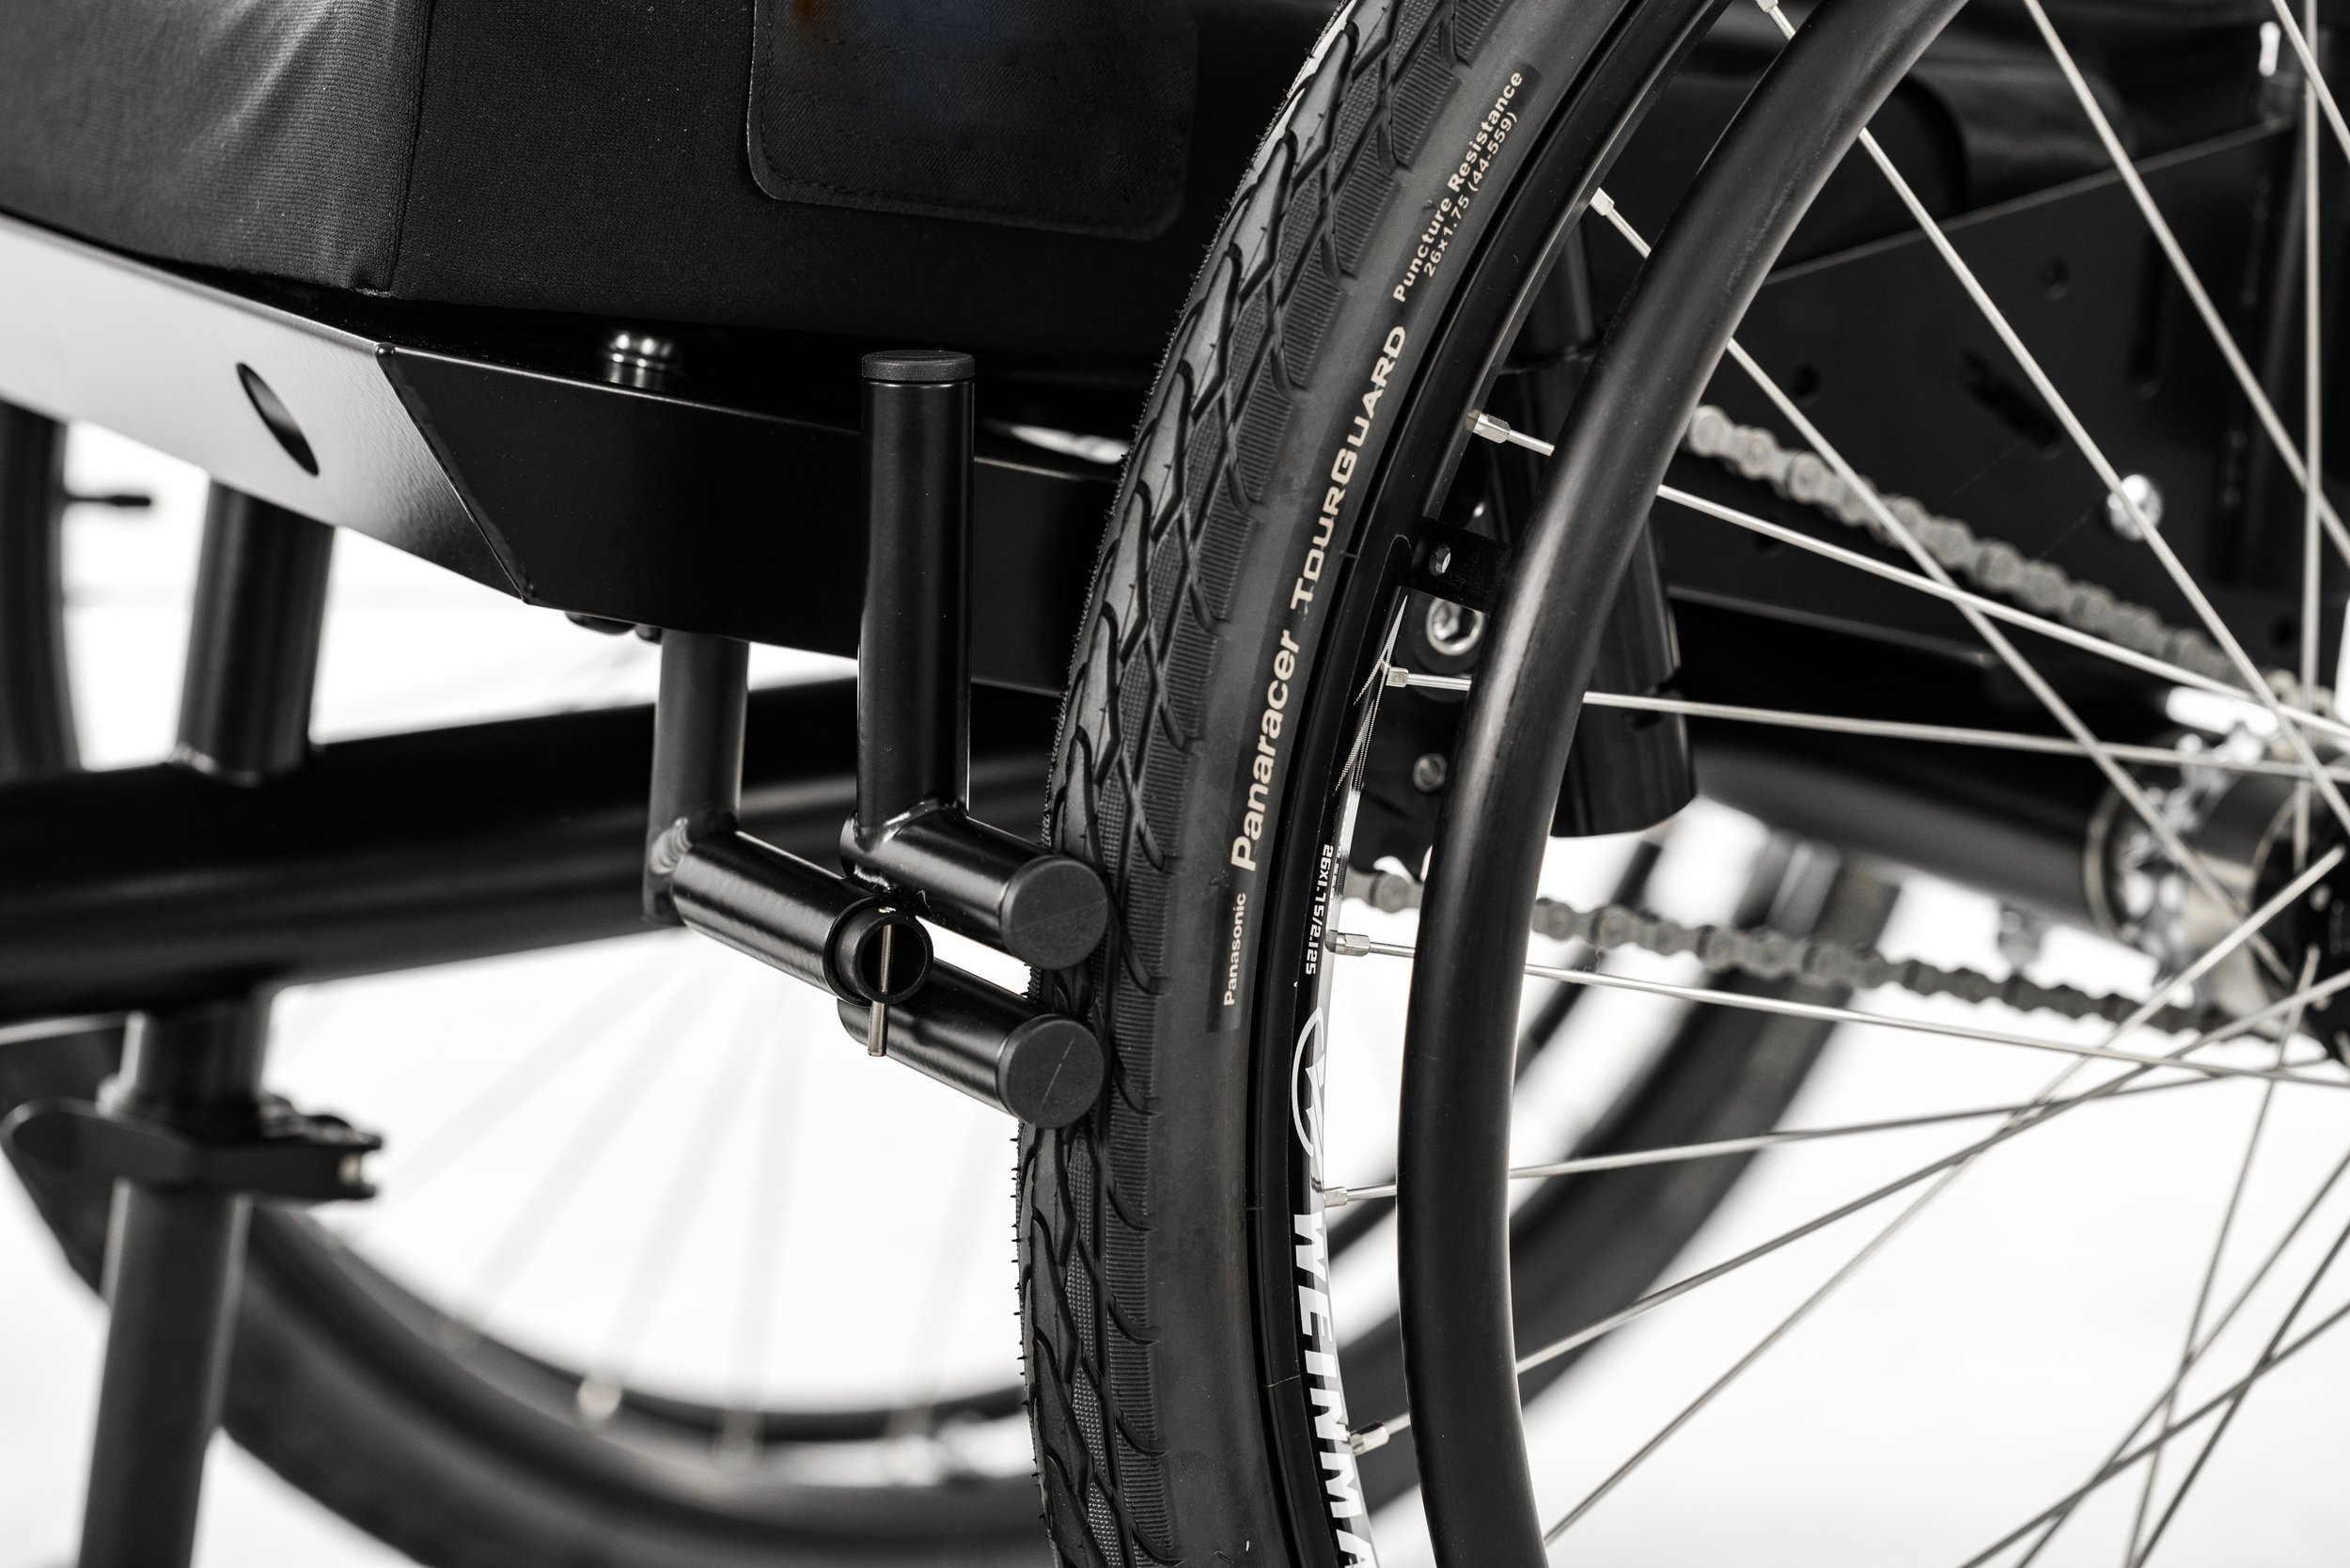 Using a tire with a smooth tread will allow you to move faster and easier on pavement.